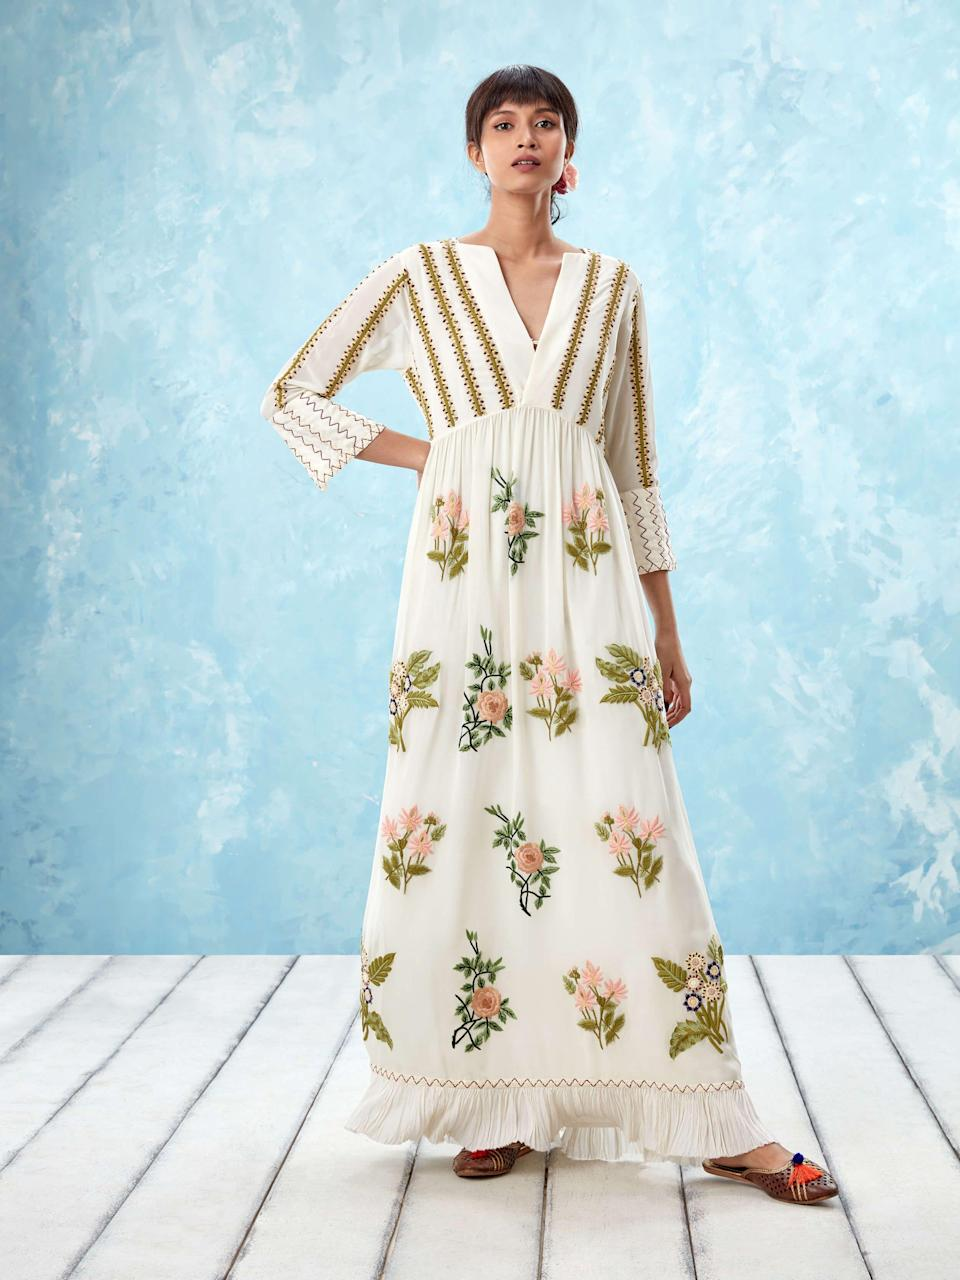 """<p>ahilaya.com</p><p><strong>$1200.00</strong></p><p><a href=""""https://www.ahilaya.com/intl/dresses/ahilaya-elizabethangardensdresswhite"""" rel=""""nofollow noopener"""" target=""""_blank"""" data-ylk=""""slk:Shop Now"""" class=""""link rapid-noclick-resp"""">Shop Now</a></p><p>""""This hand embroidered silk dress transports my imagination to a beautiful, lush garden whenever I wear it. The craftsmanship is impeccable, and the romantic features are perfect for those hot late summer days.""""—<em>Dania Ortiz, Fashion and Accessories Director</em></p>"""